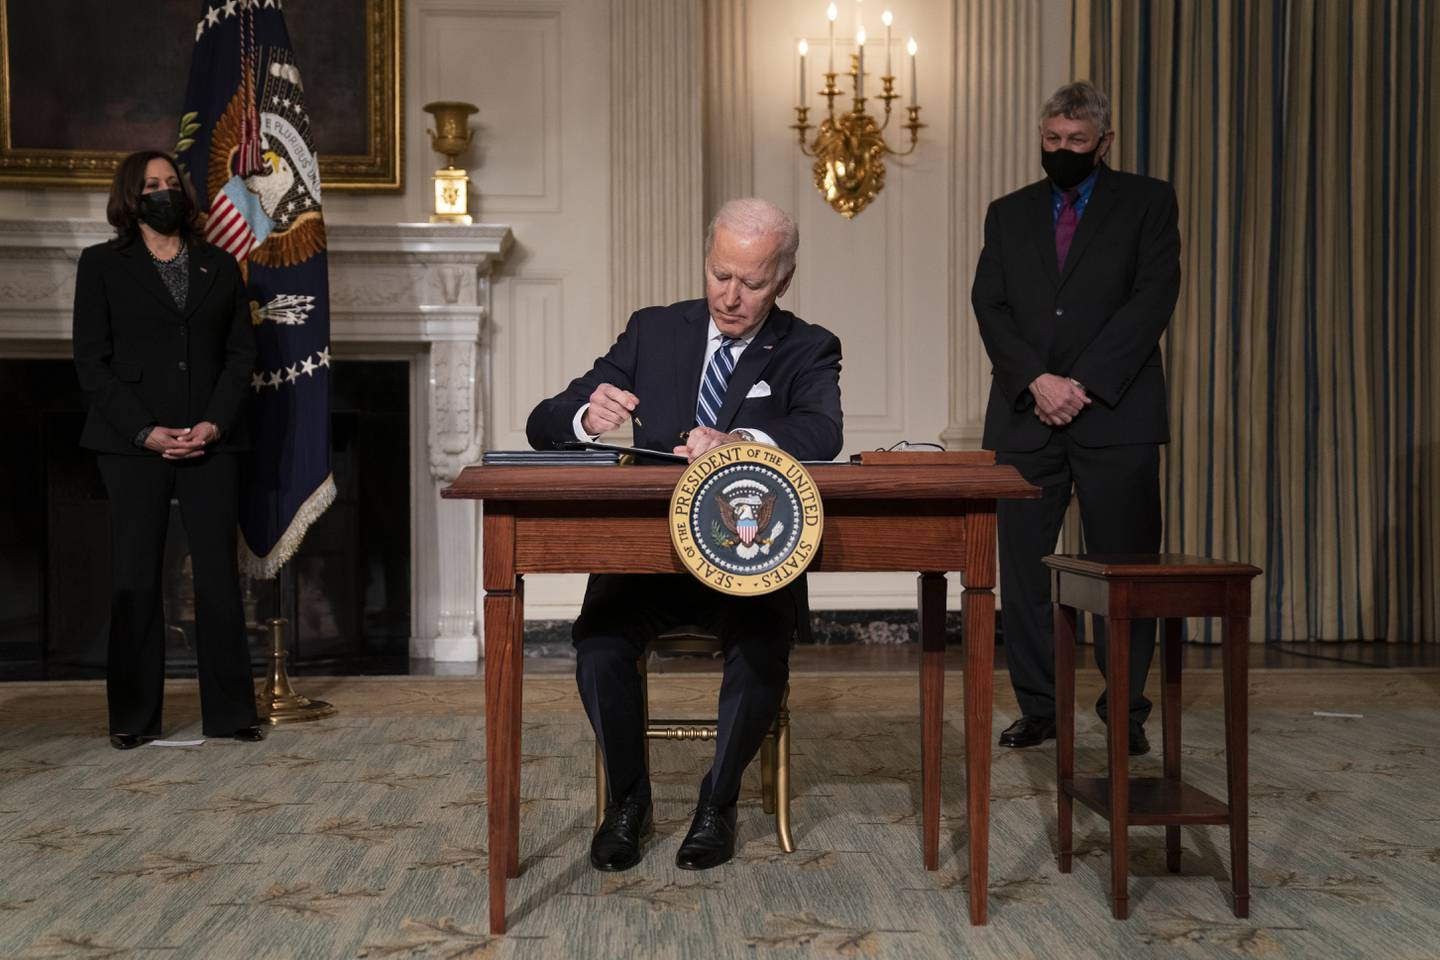 Vice President Kamala Harris, left, and White House science adviser Dr. Eric Lander, right, look on as President Joe Biden signs a series of executive orders on climate change, in the State Dining Room of the White House, Wednesday, Jan. 27, 2021, in Washington. (AP Photo/Evan Vucci)